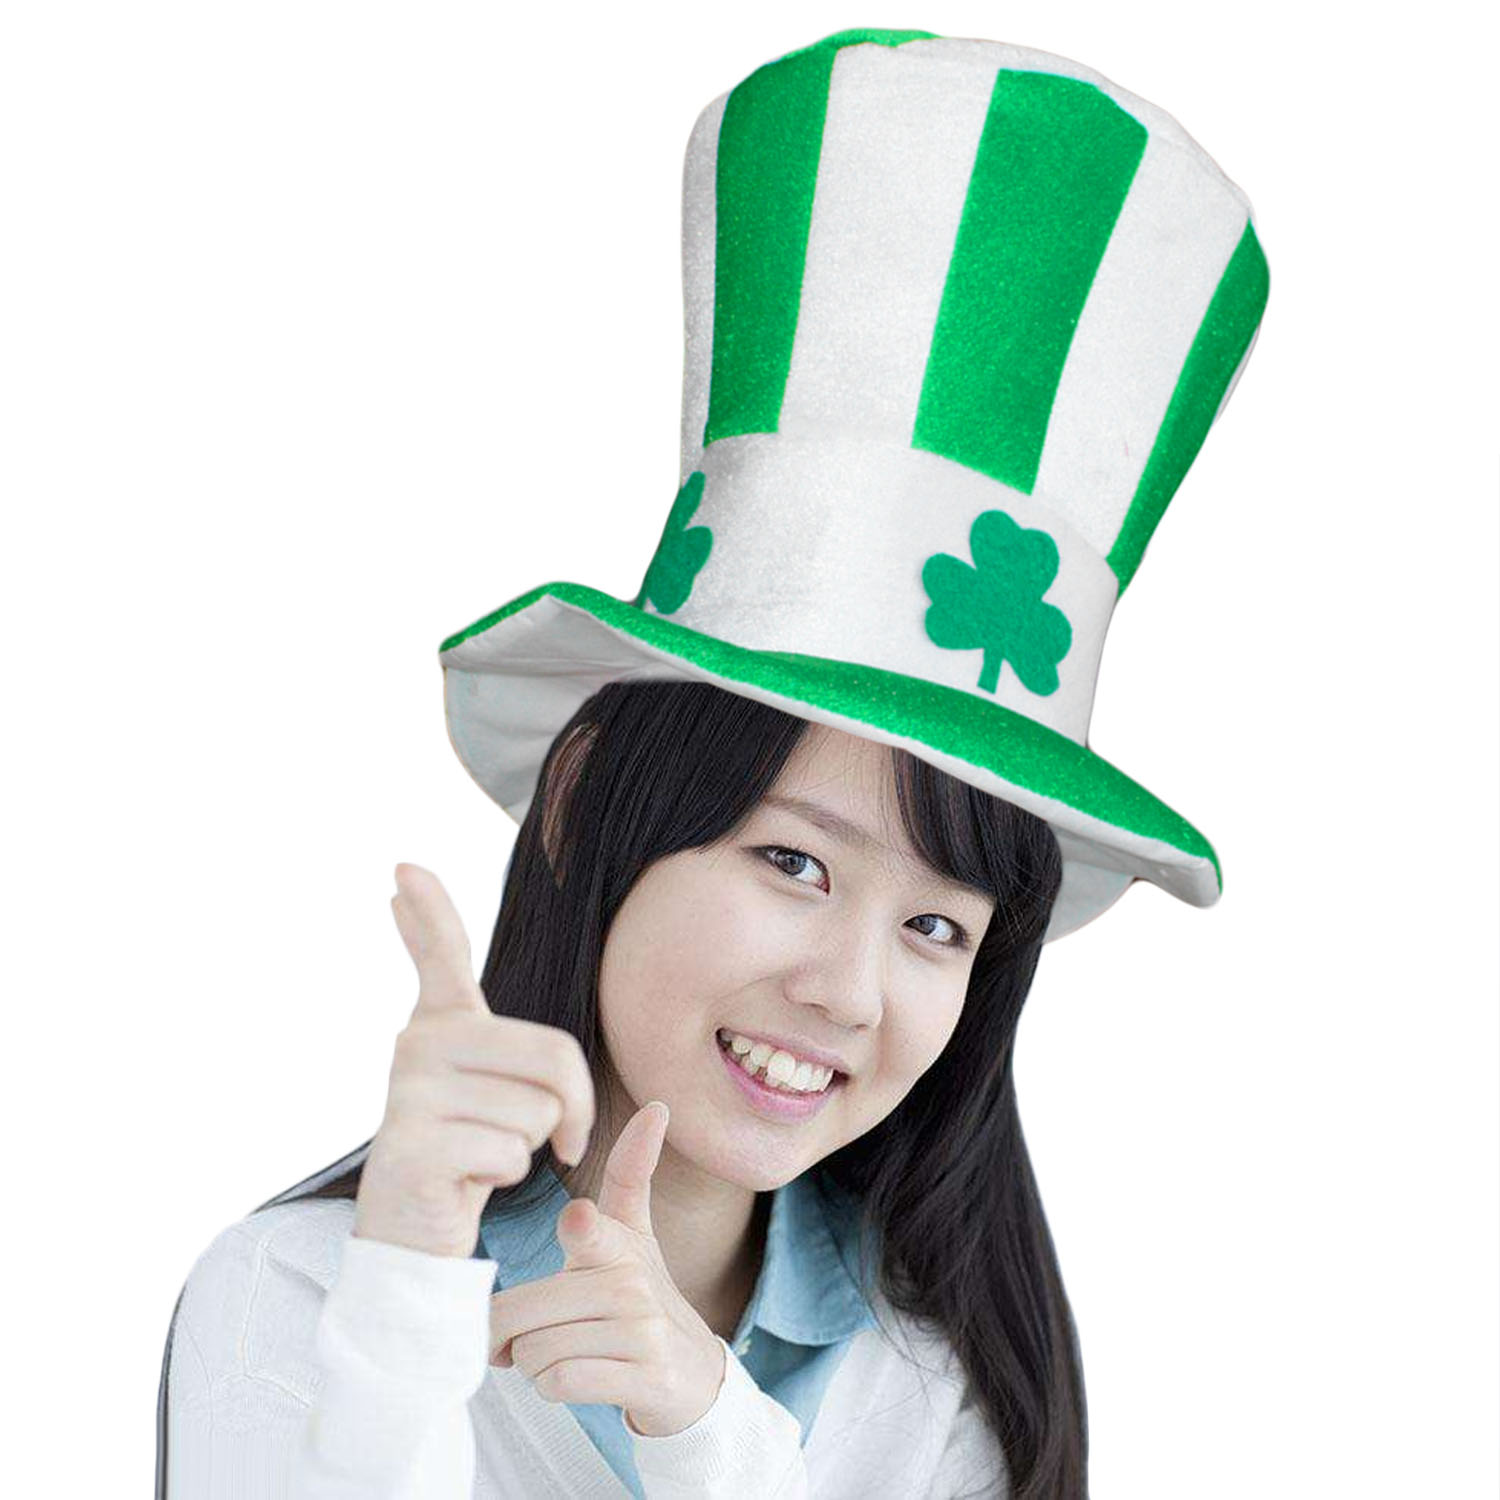 Green St Patricks Day Leprechaun Top Hat Irish Fun Saint Patrick Costume Cap Clover Hats Photo Booth Prop